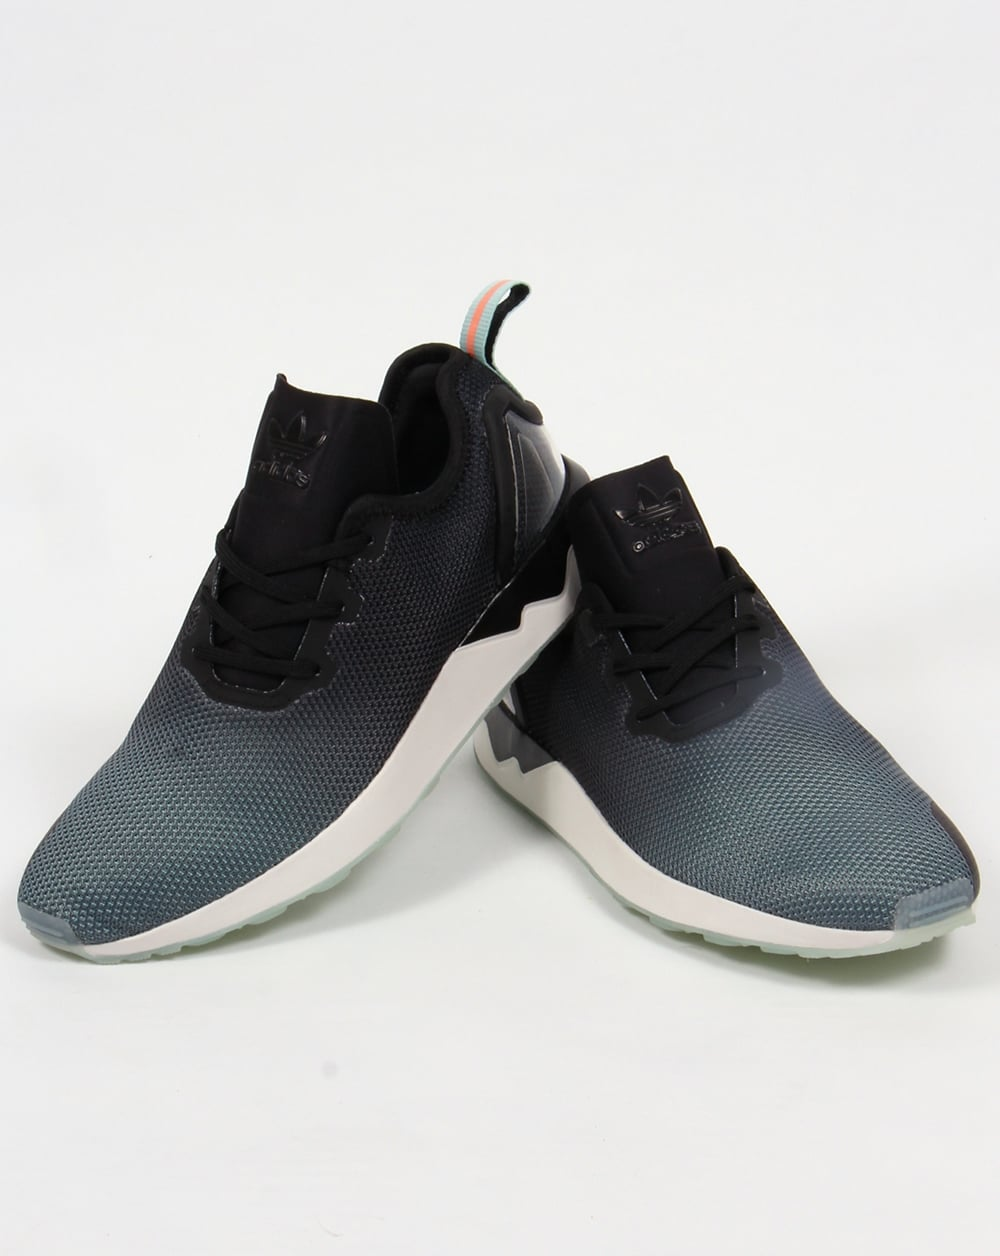 buy popular 93d8c 032e7 Adidas ZX Flux Racer Asym Trainers Black/Black/Blue Glow